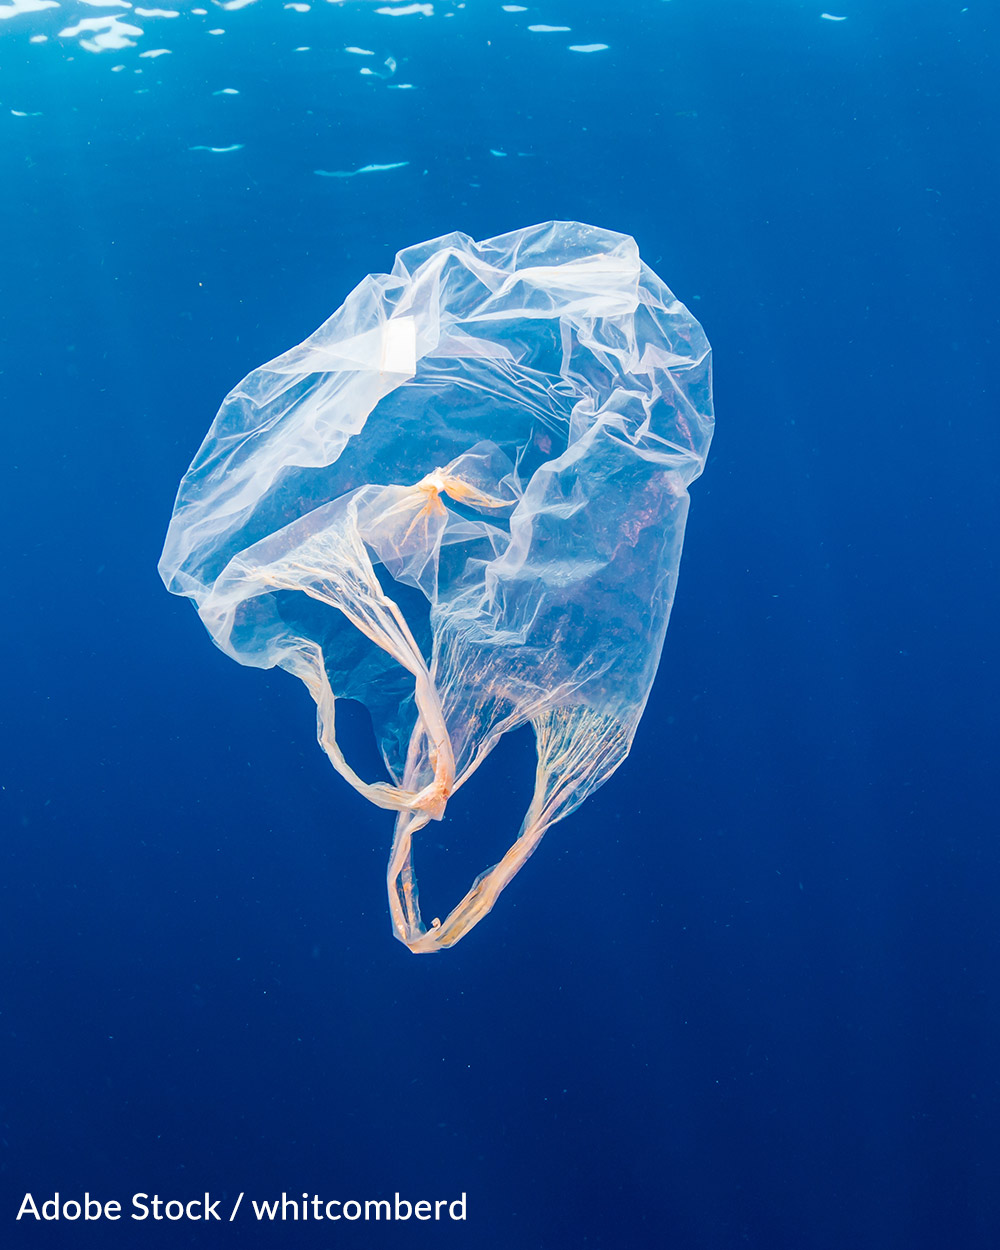 A single plastic bag can take 1,000 years to decompose.